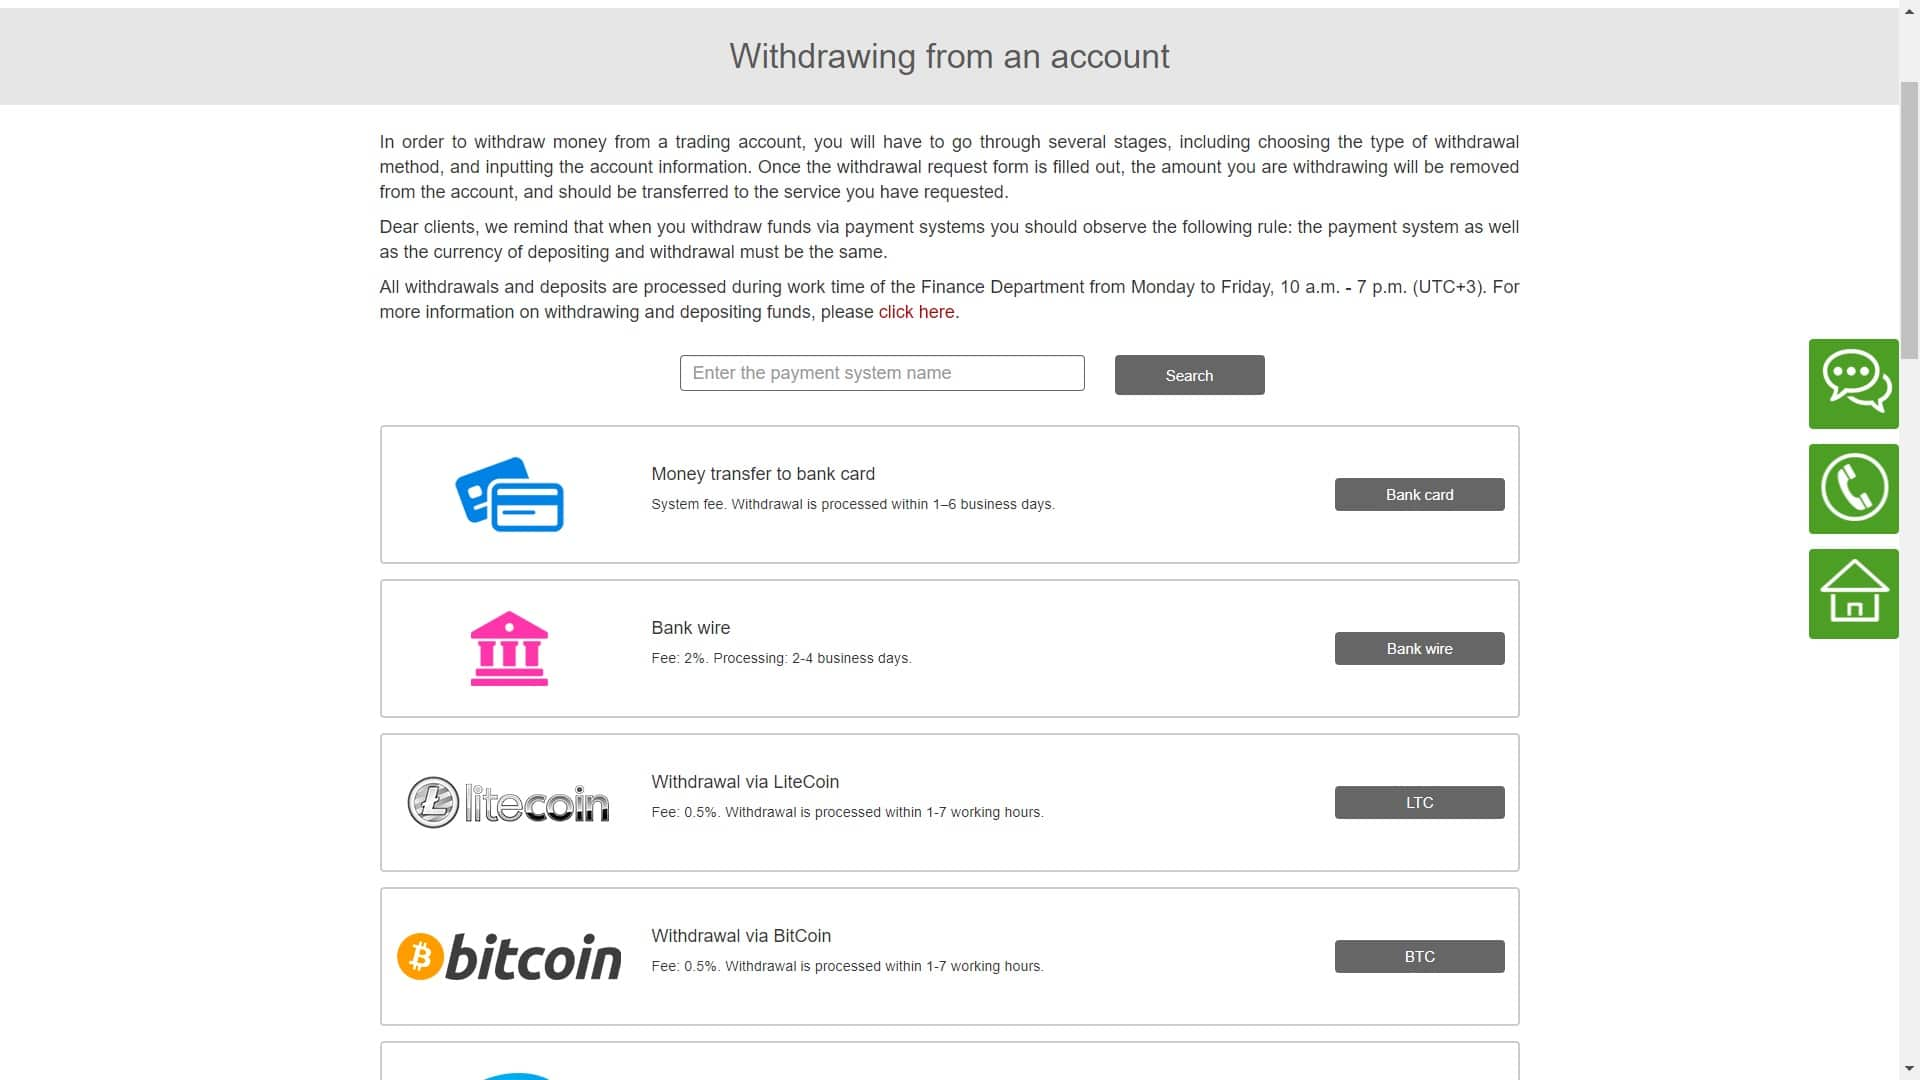 InstaForex withdrawal page